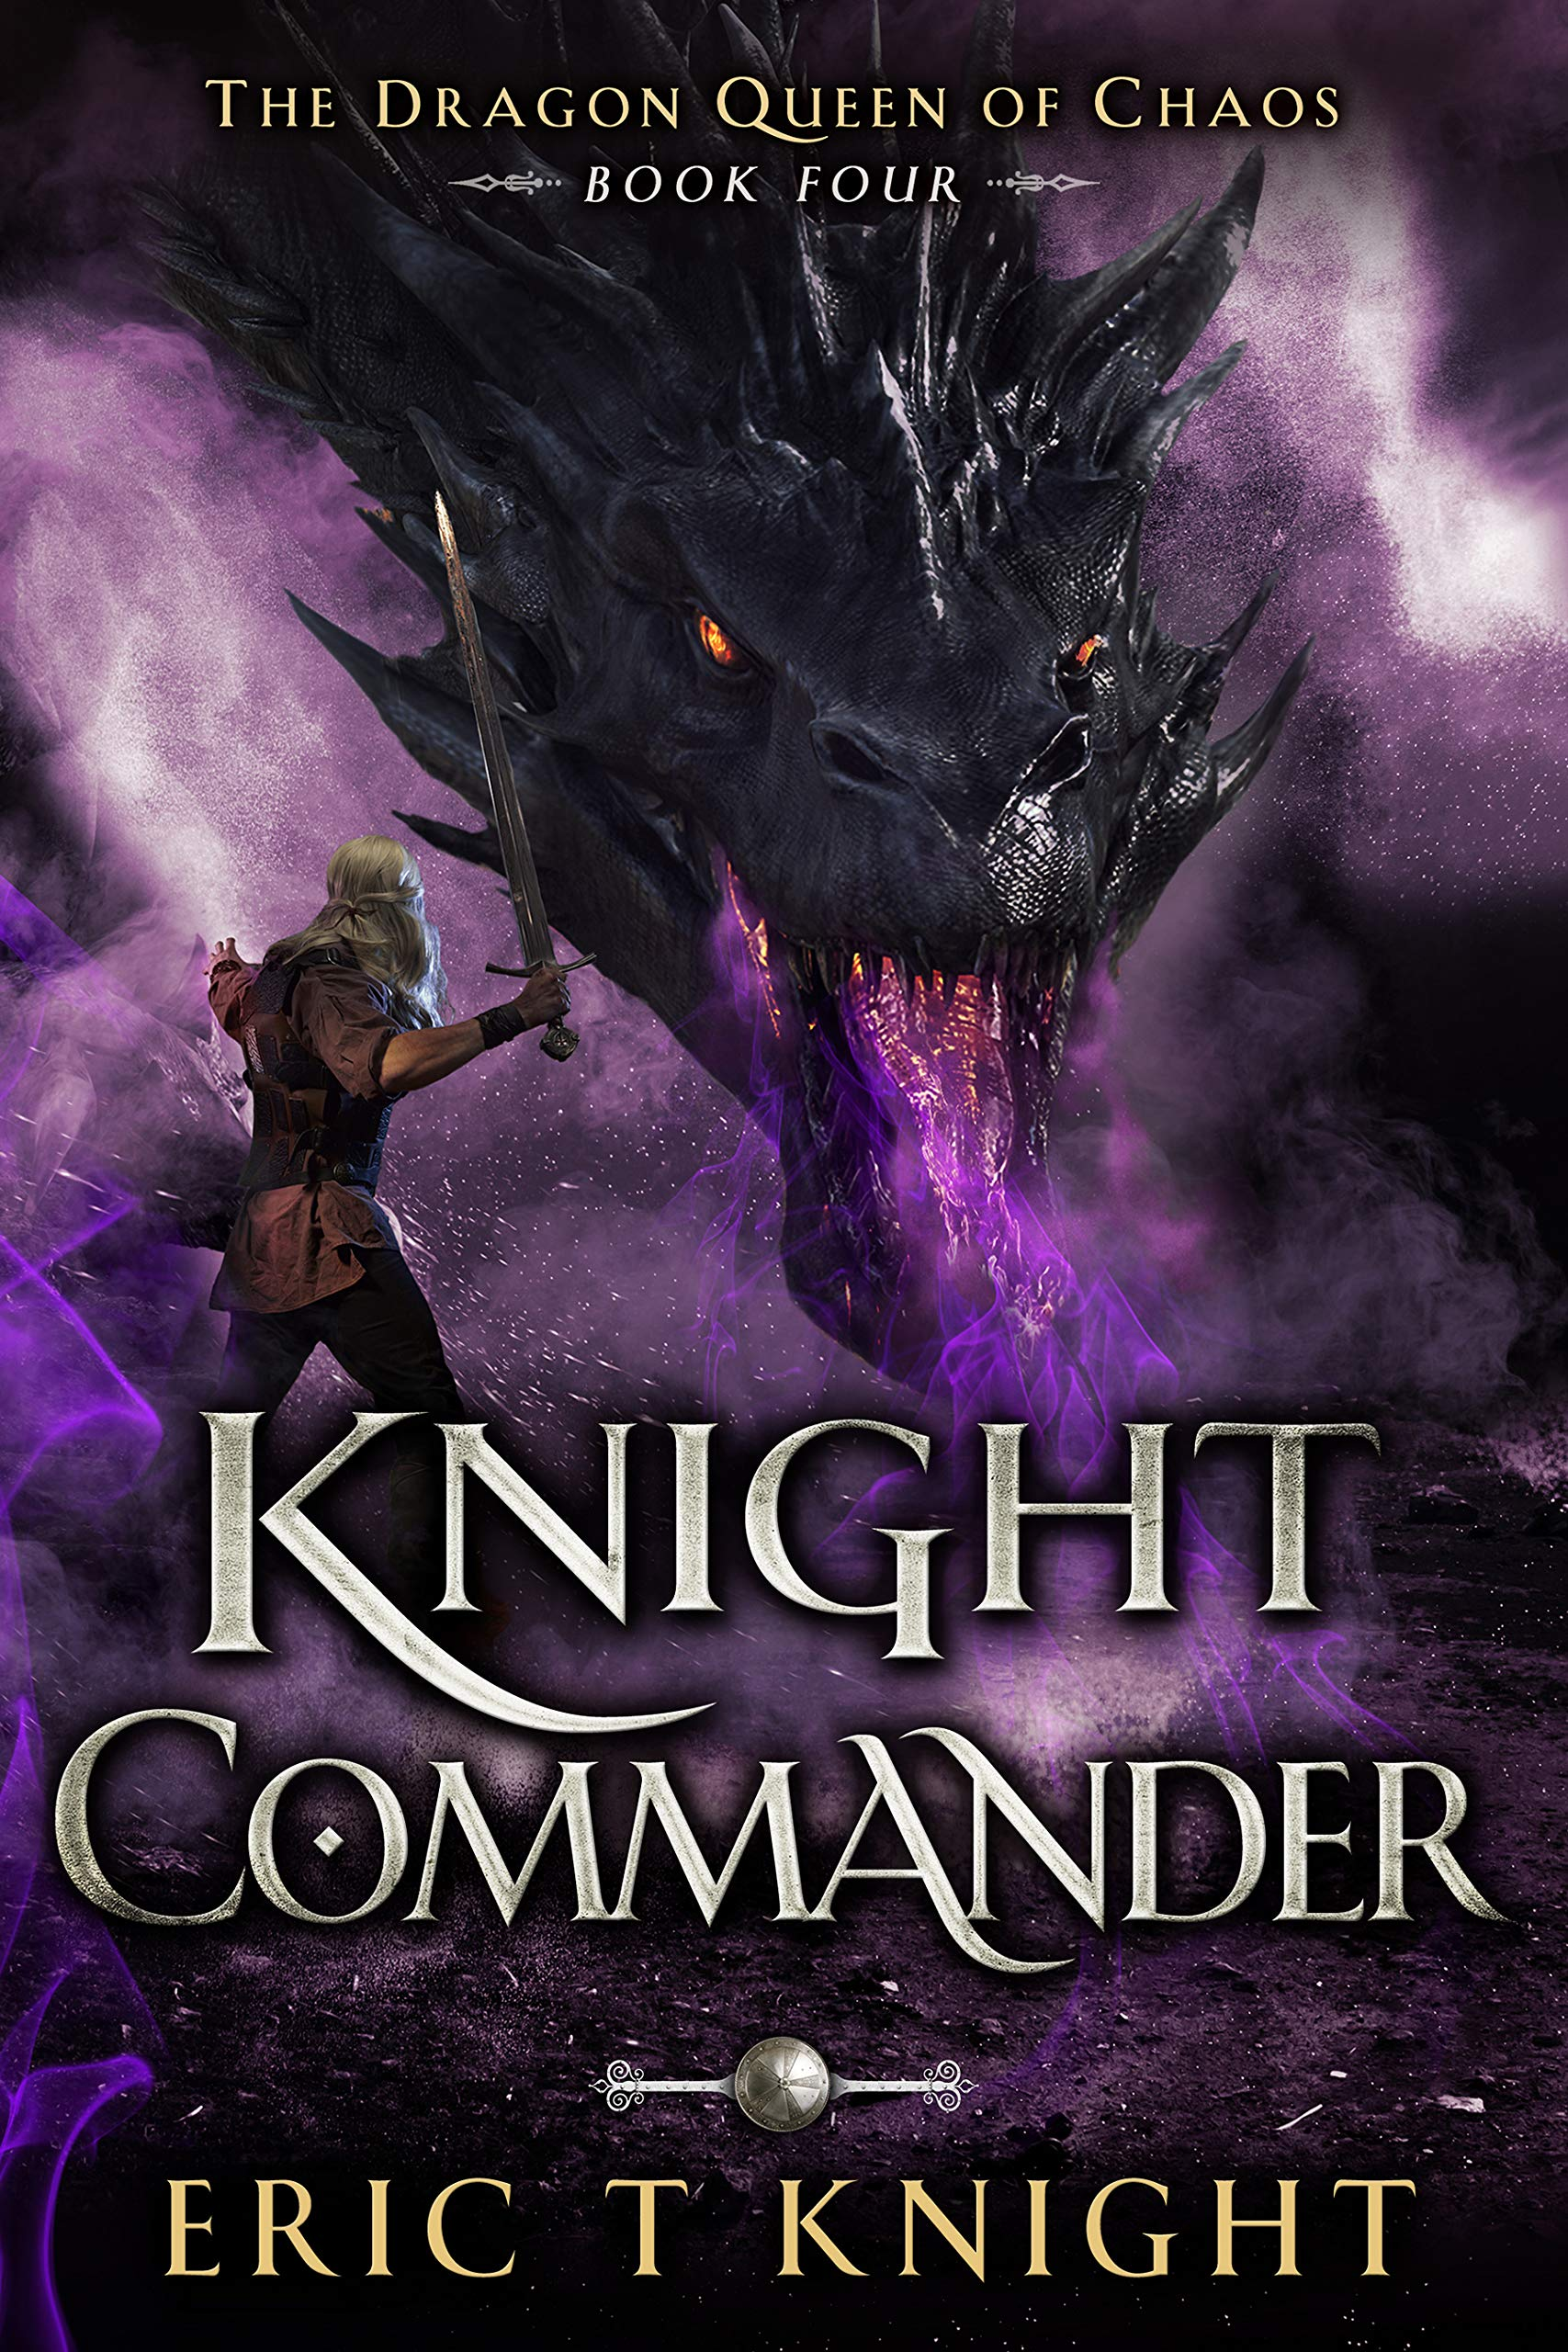 Knight Commander: A Coming of Age Epic Fantasy Adventure (The Dragon Queen of Chaos Book 4)